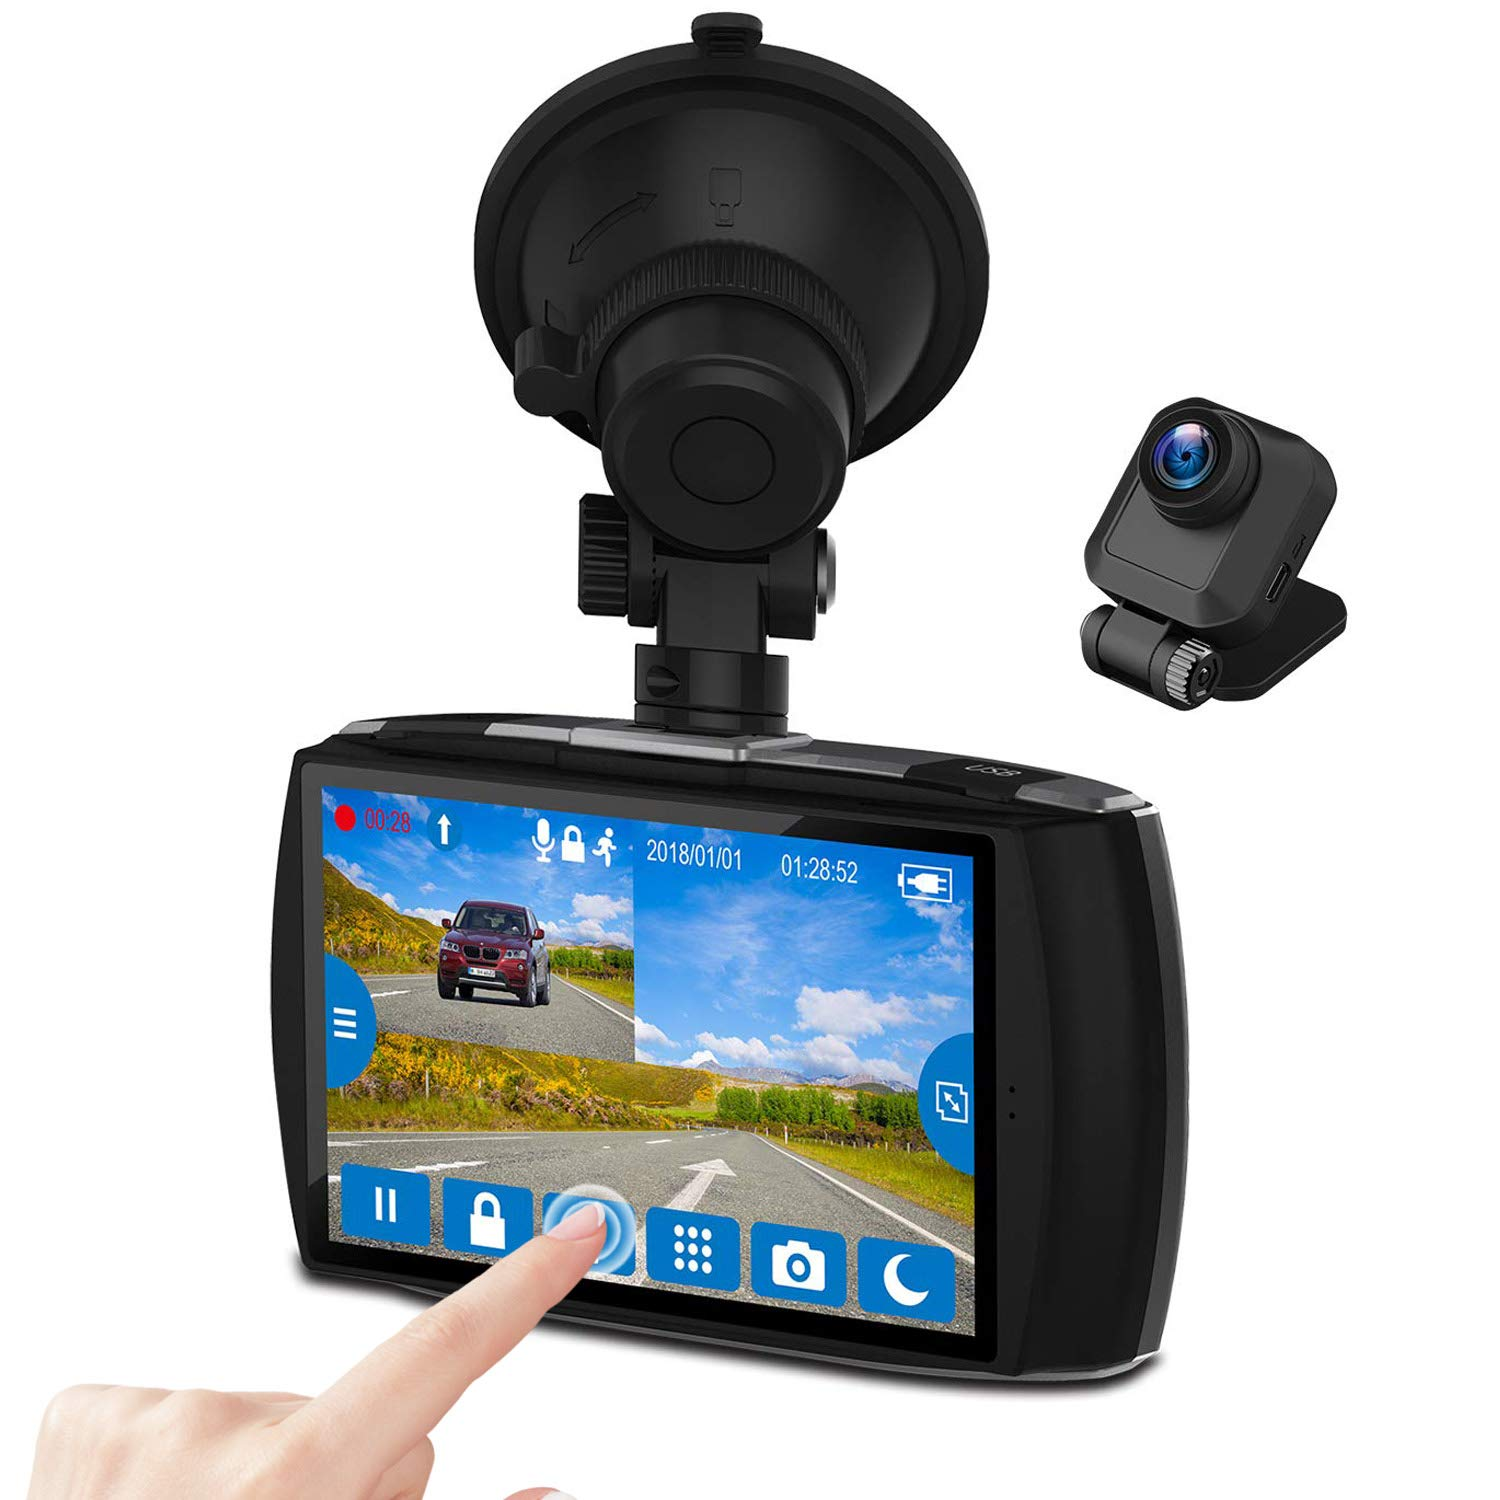 Z-EDGE Dash Cam Front and Rear 4.0'' Touch Screen Dual Dash Cam FHD 1080P with Night Mode, 32GB Card Included,155 Degree Wide Angle, WDR, G-Sensor, Loop Recording